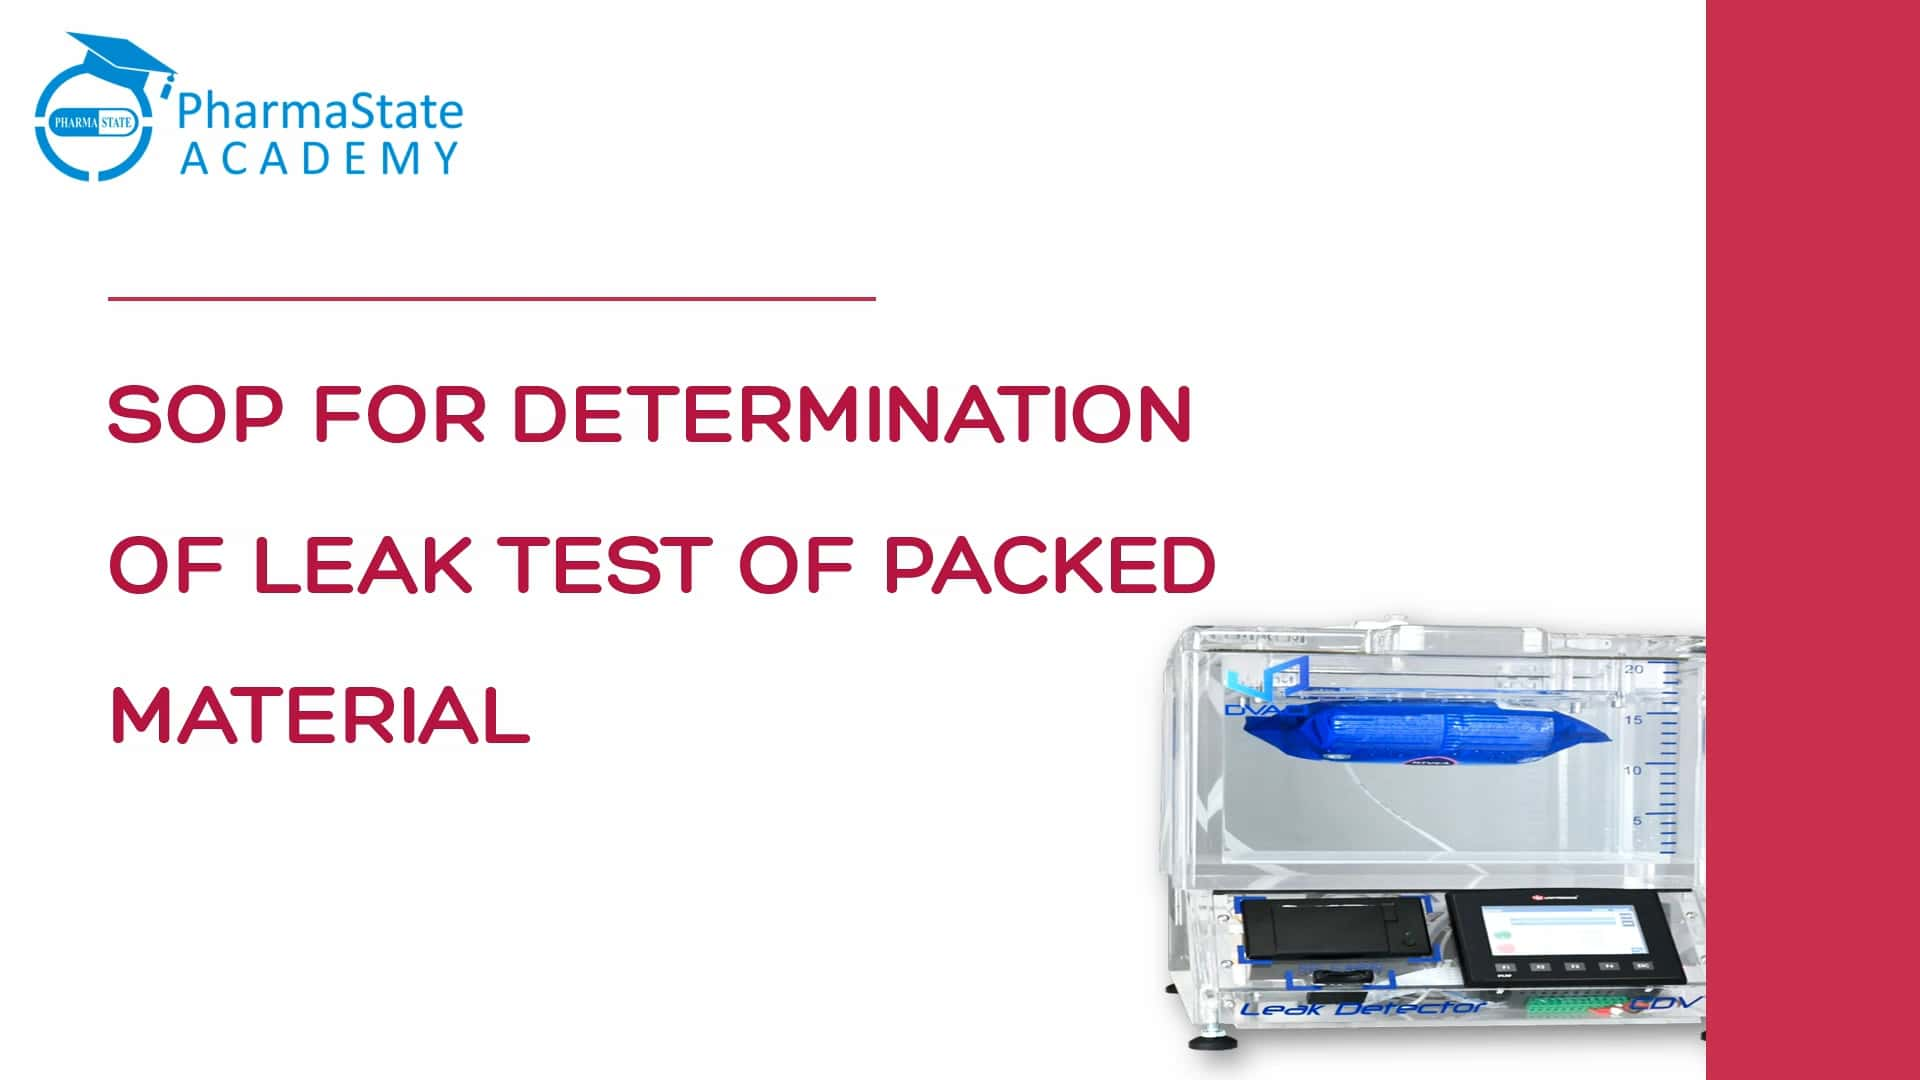 SOP FOR DETERMINATION OF LEAK TEST OF PACKED MATERIAL